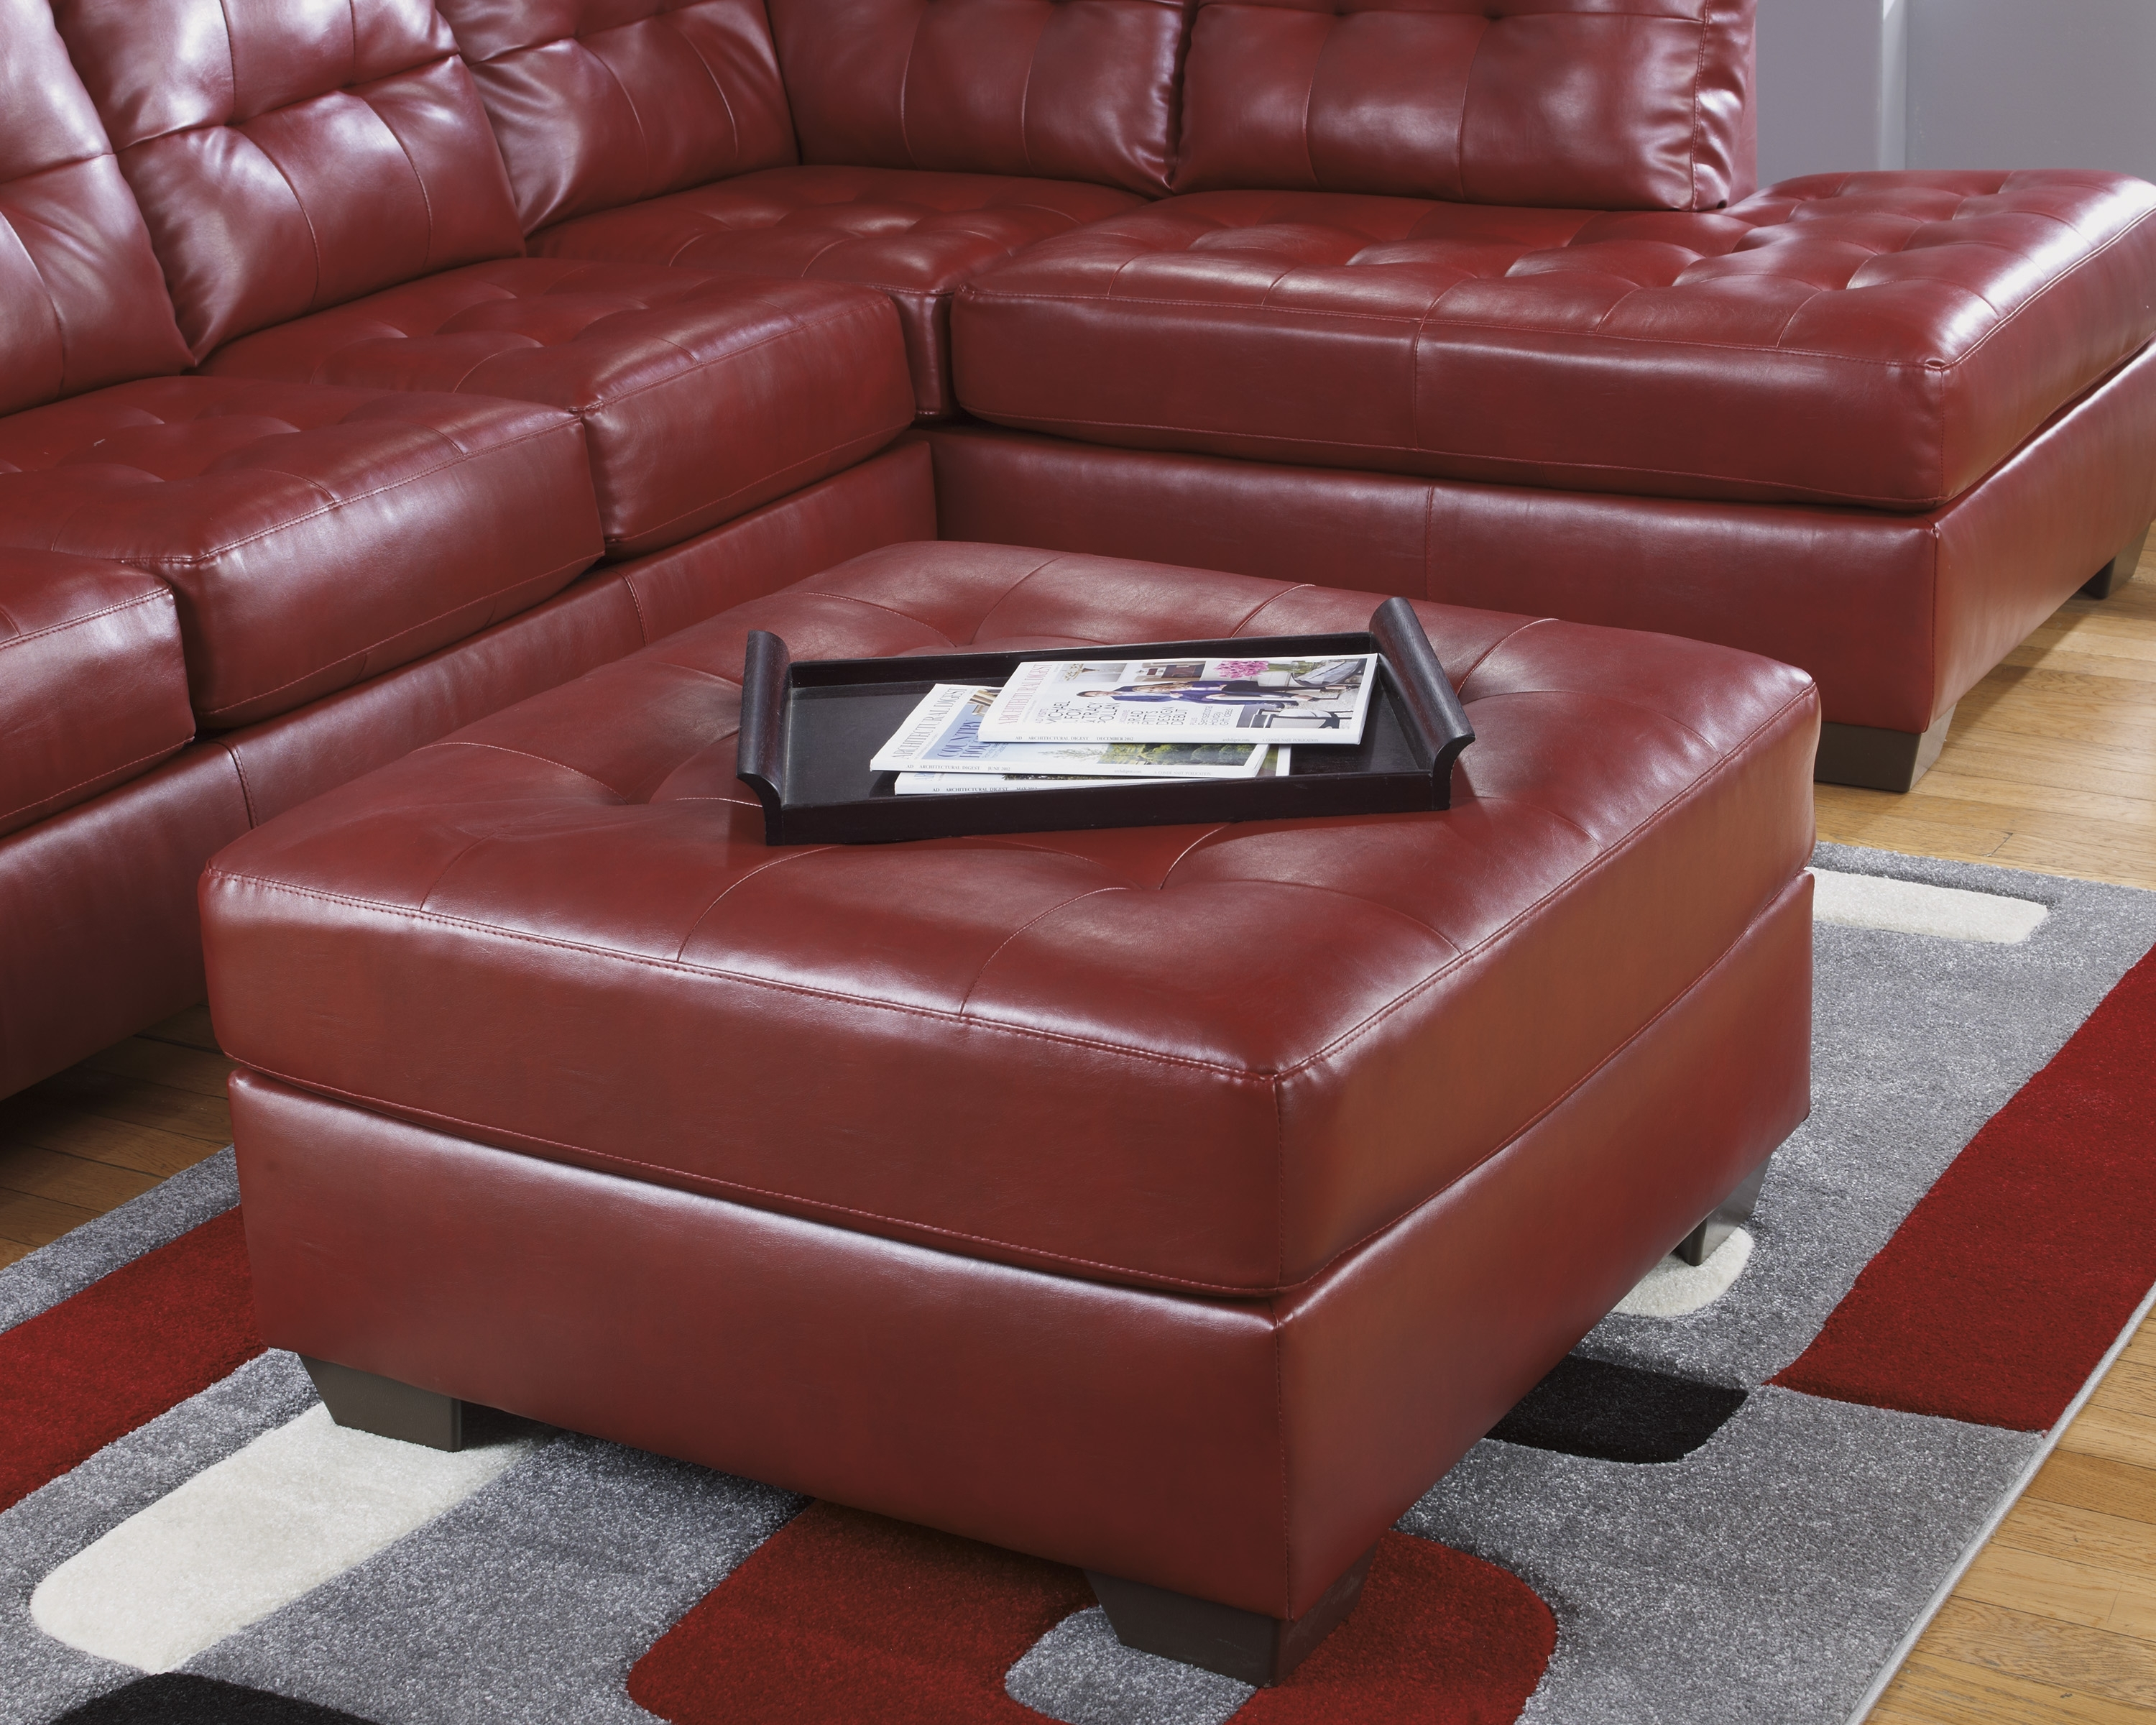 Ashley Furniture Leather Sectionals, Ashley Furniture Sofa Sleepers Inside Red Leather Sectionals With Ottoman (Image 1 of 10)